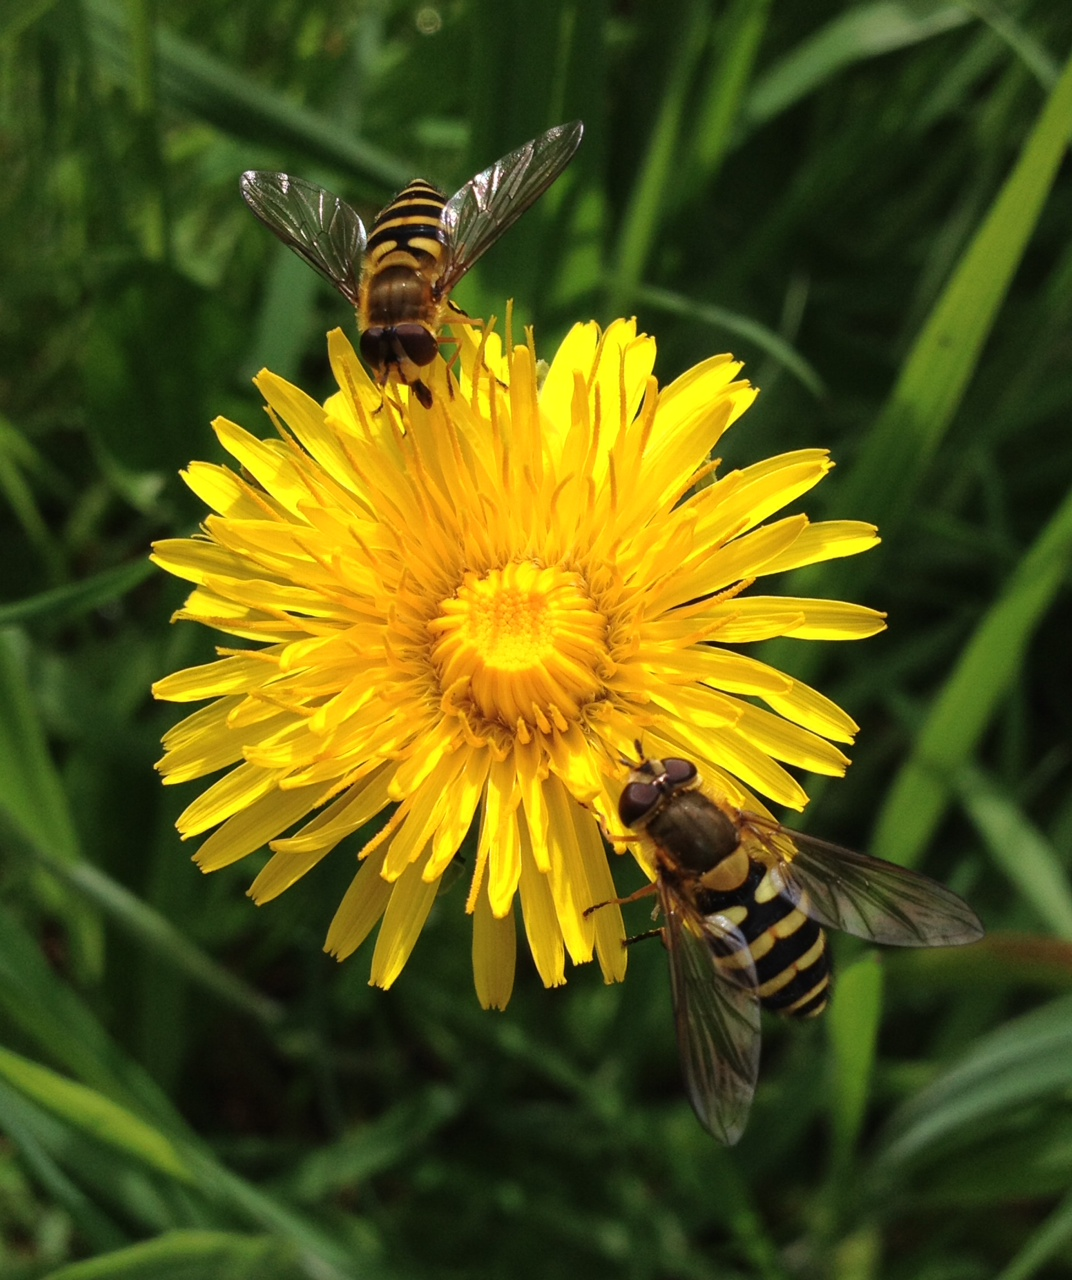 image of hoverflies on a flower